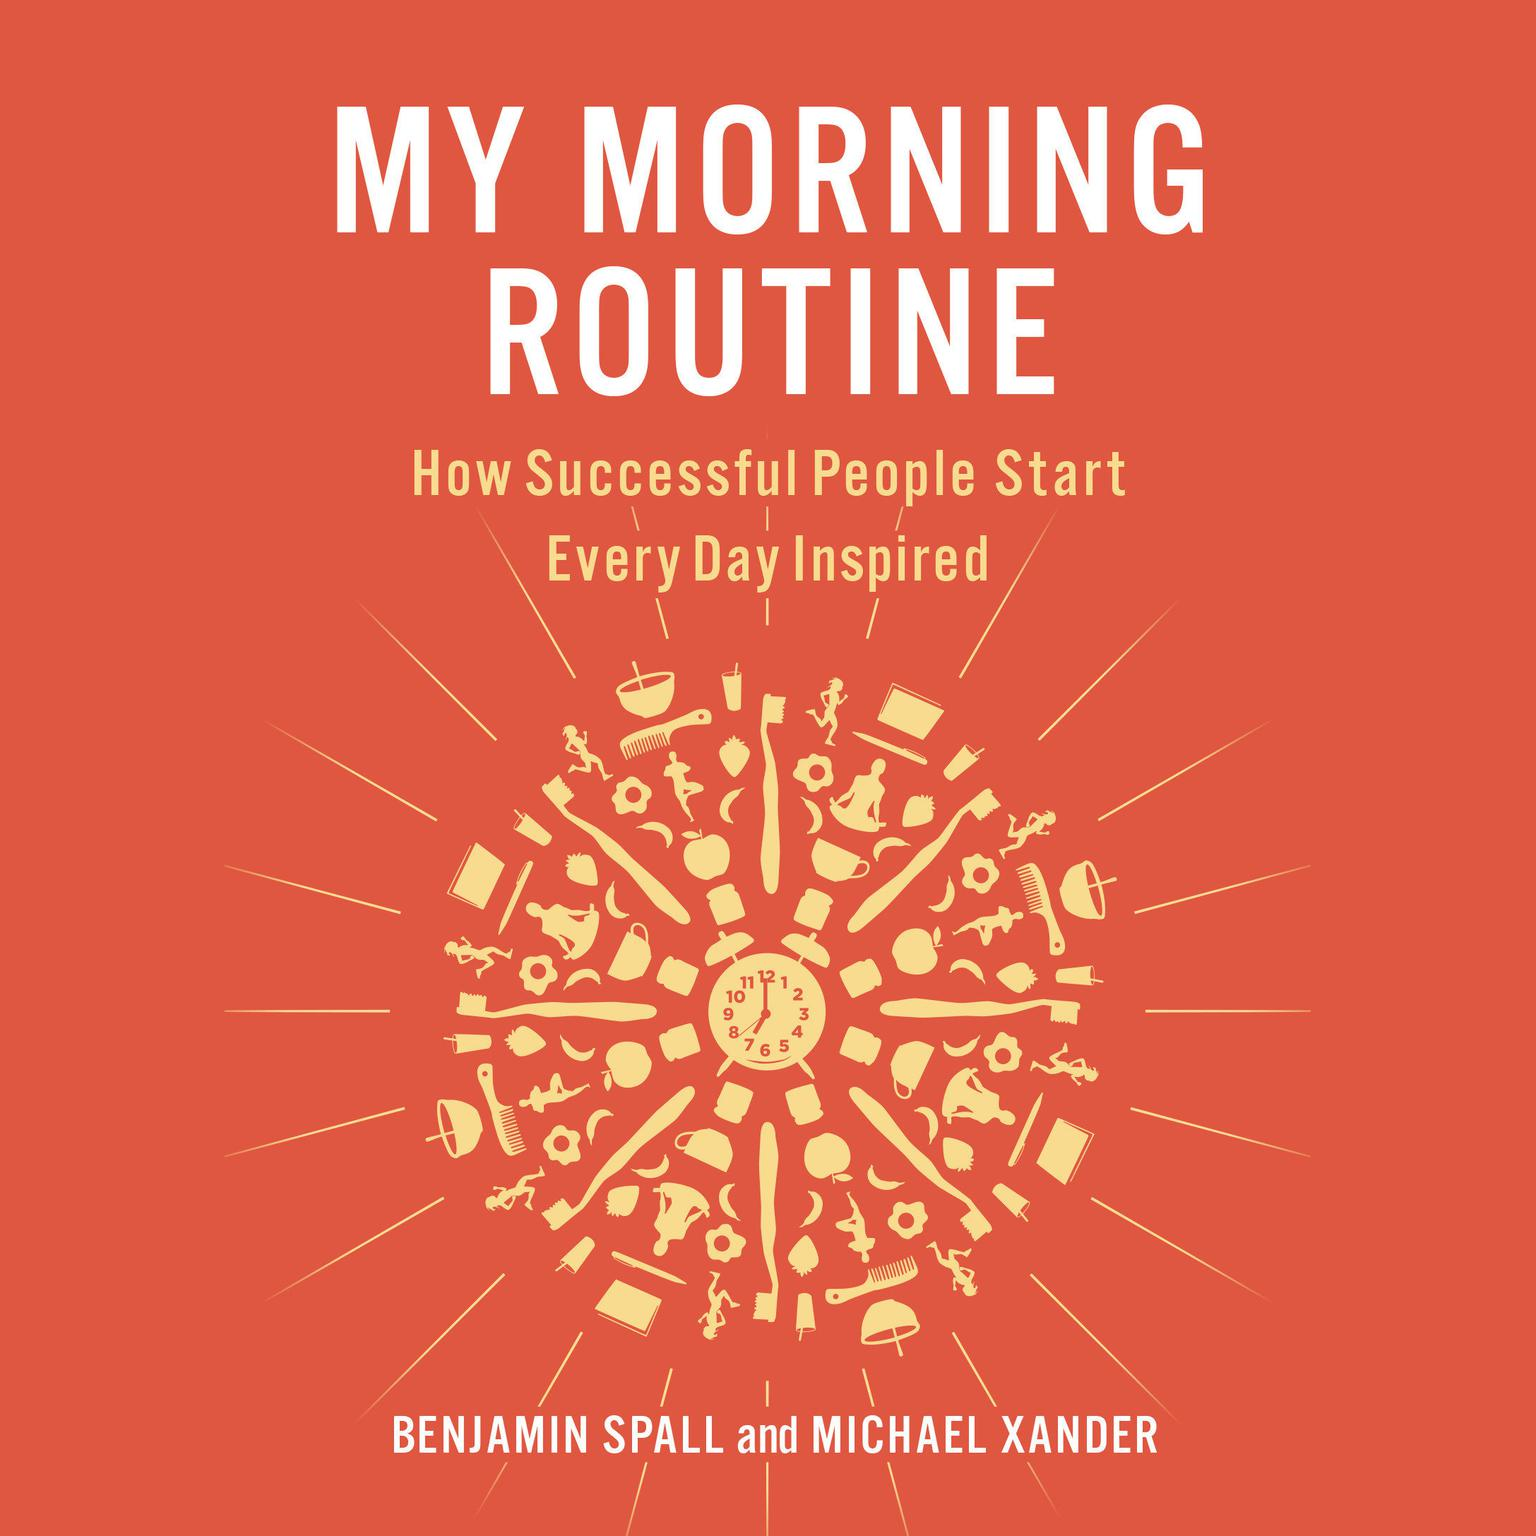 My Morning Routine: How Successful People Start Every Day Inspired Audiobook, by Benjamin Spall